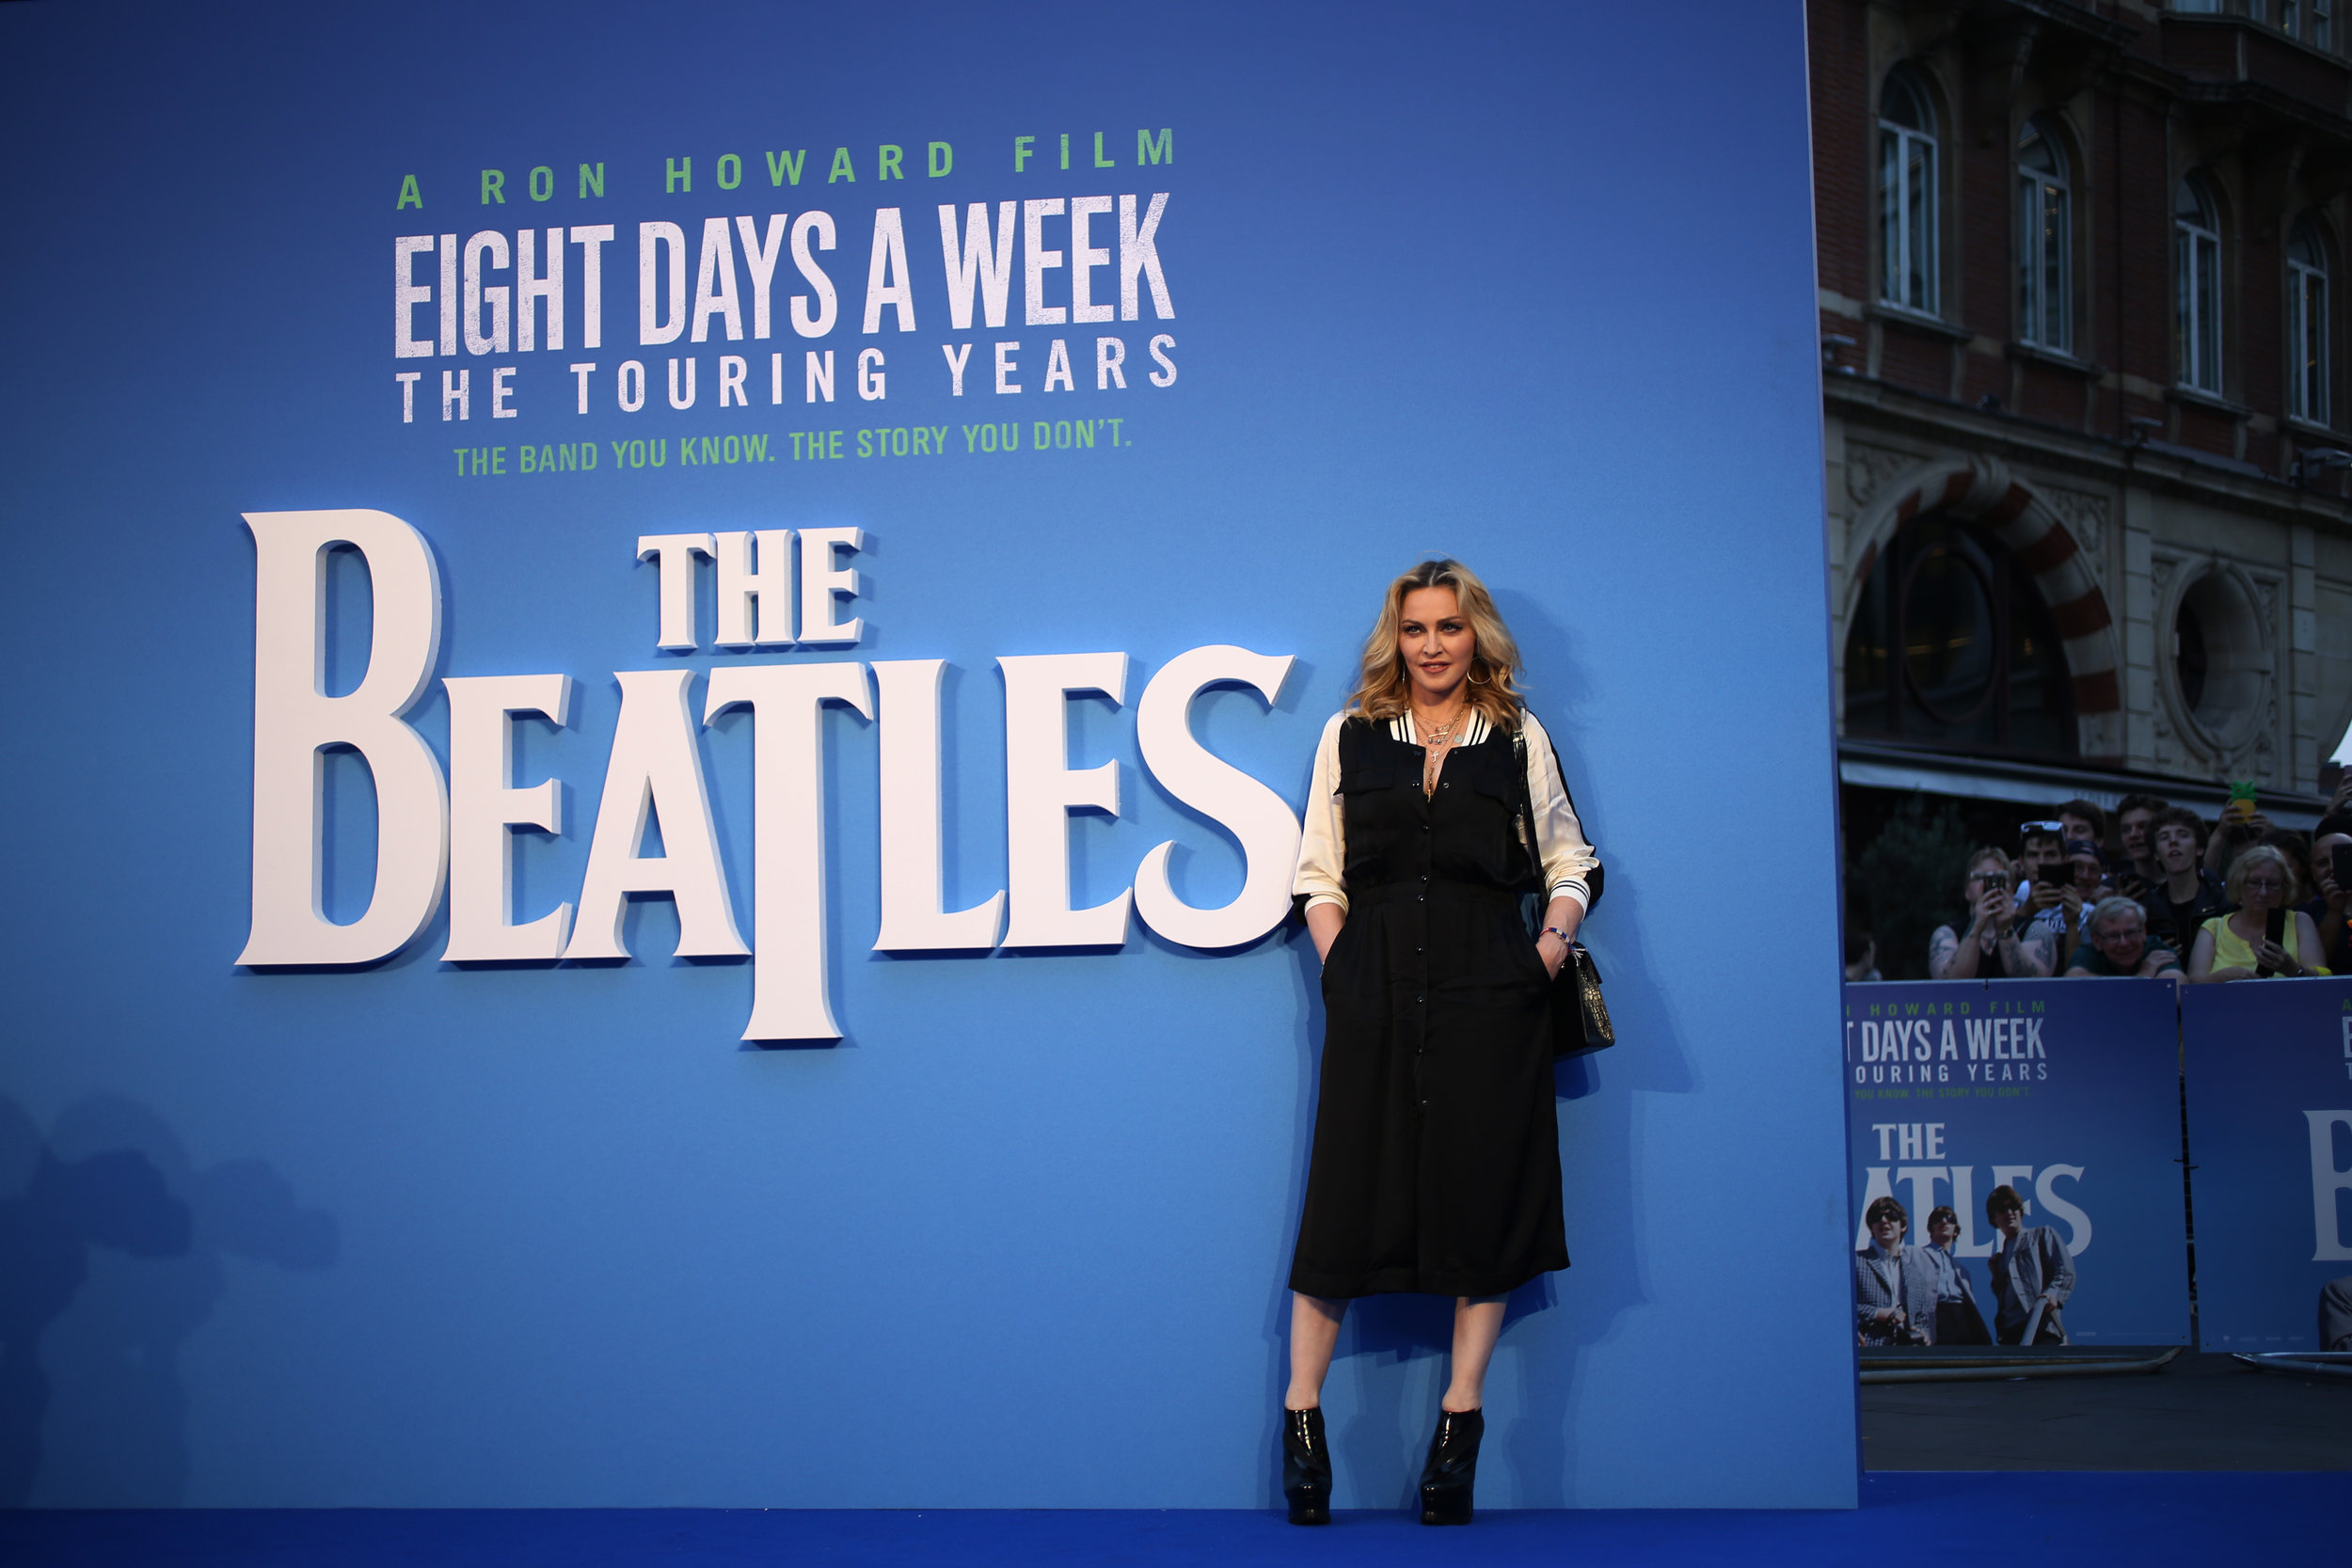 EIGHT DAYS A WEEK, THE TOURING YEARS PREMIERE